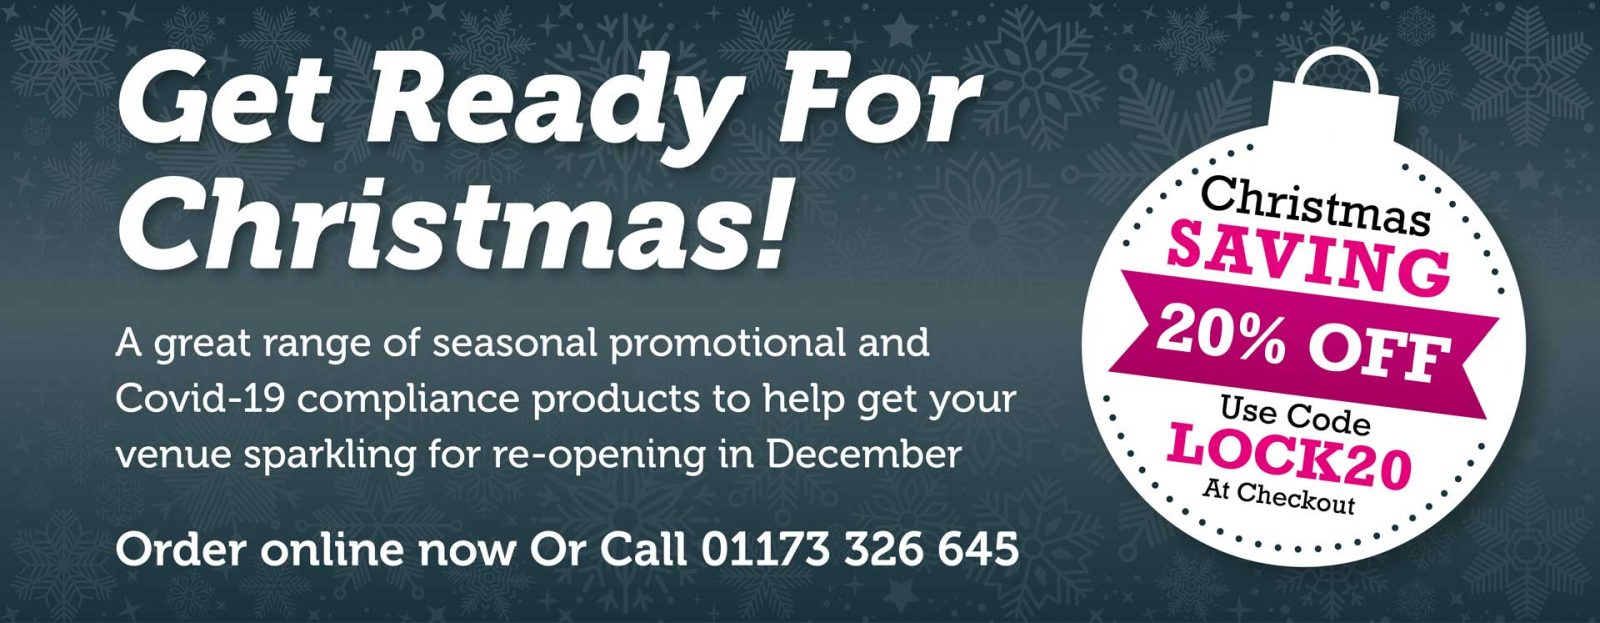 Helping You Get Ready For Christmas!